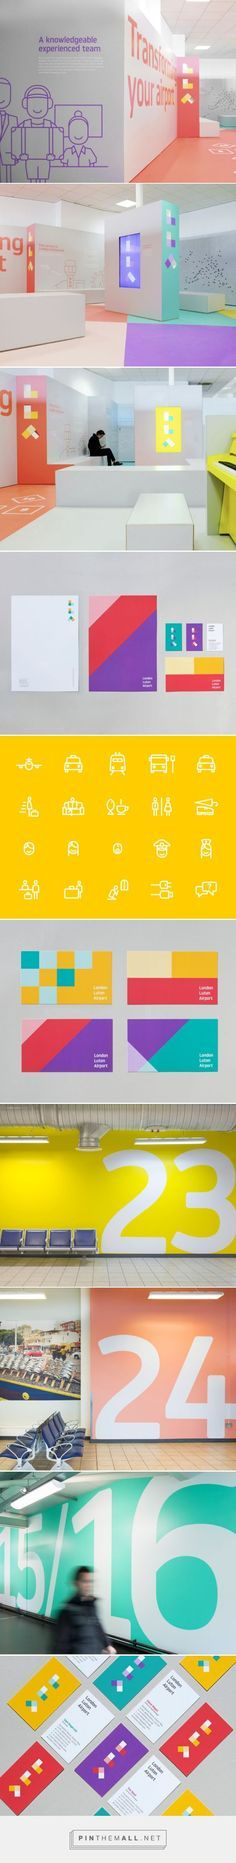 London Luton Airport Branding by Ico Design - stationery and matching wall…